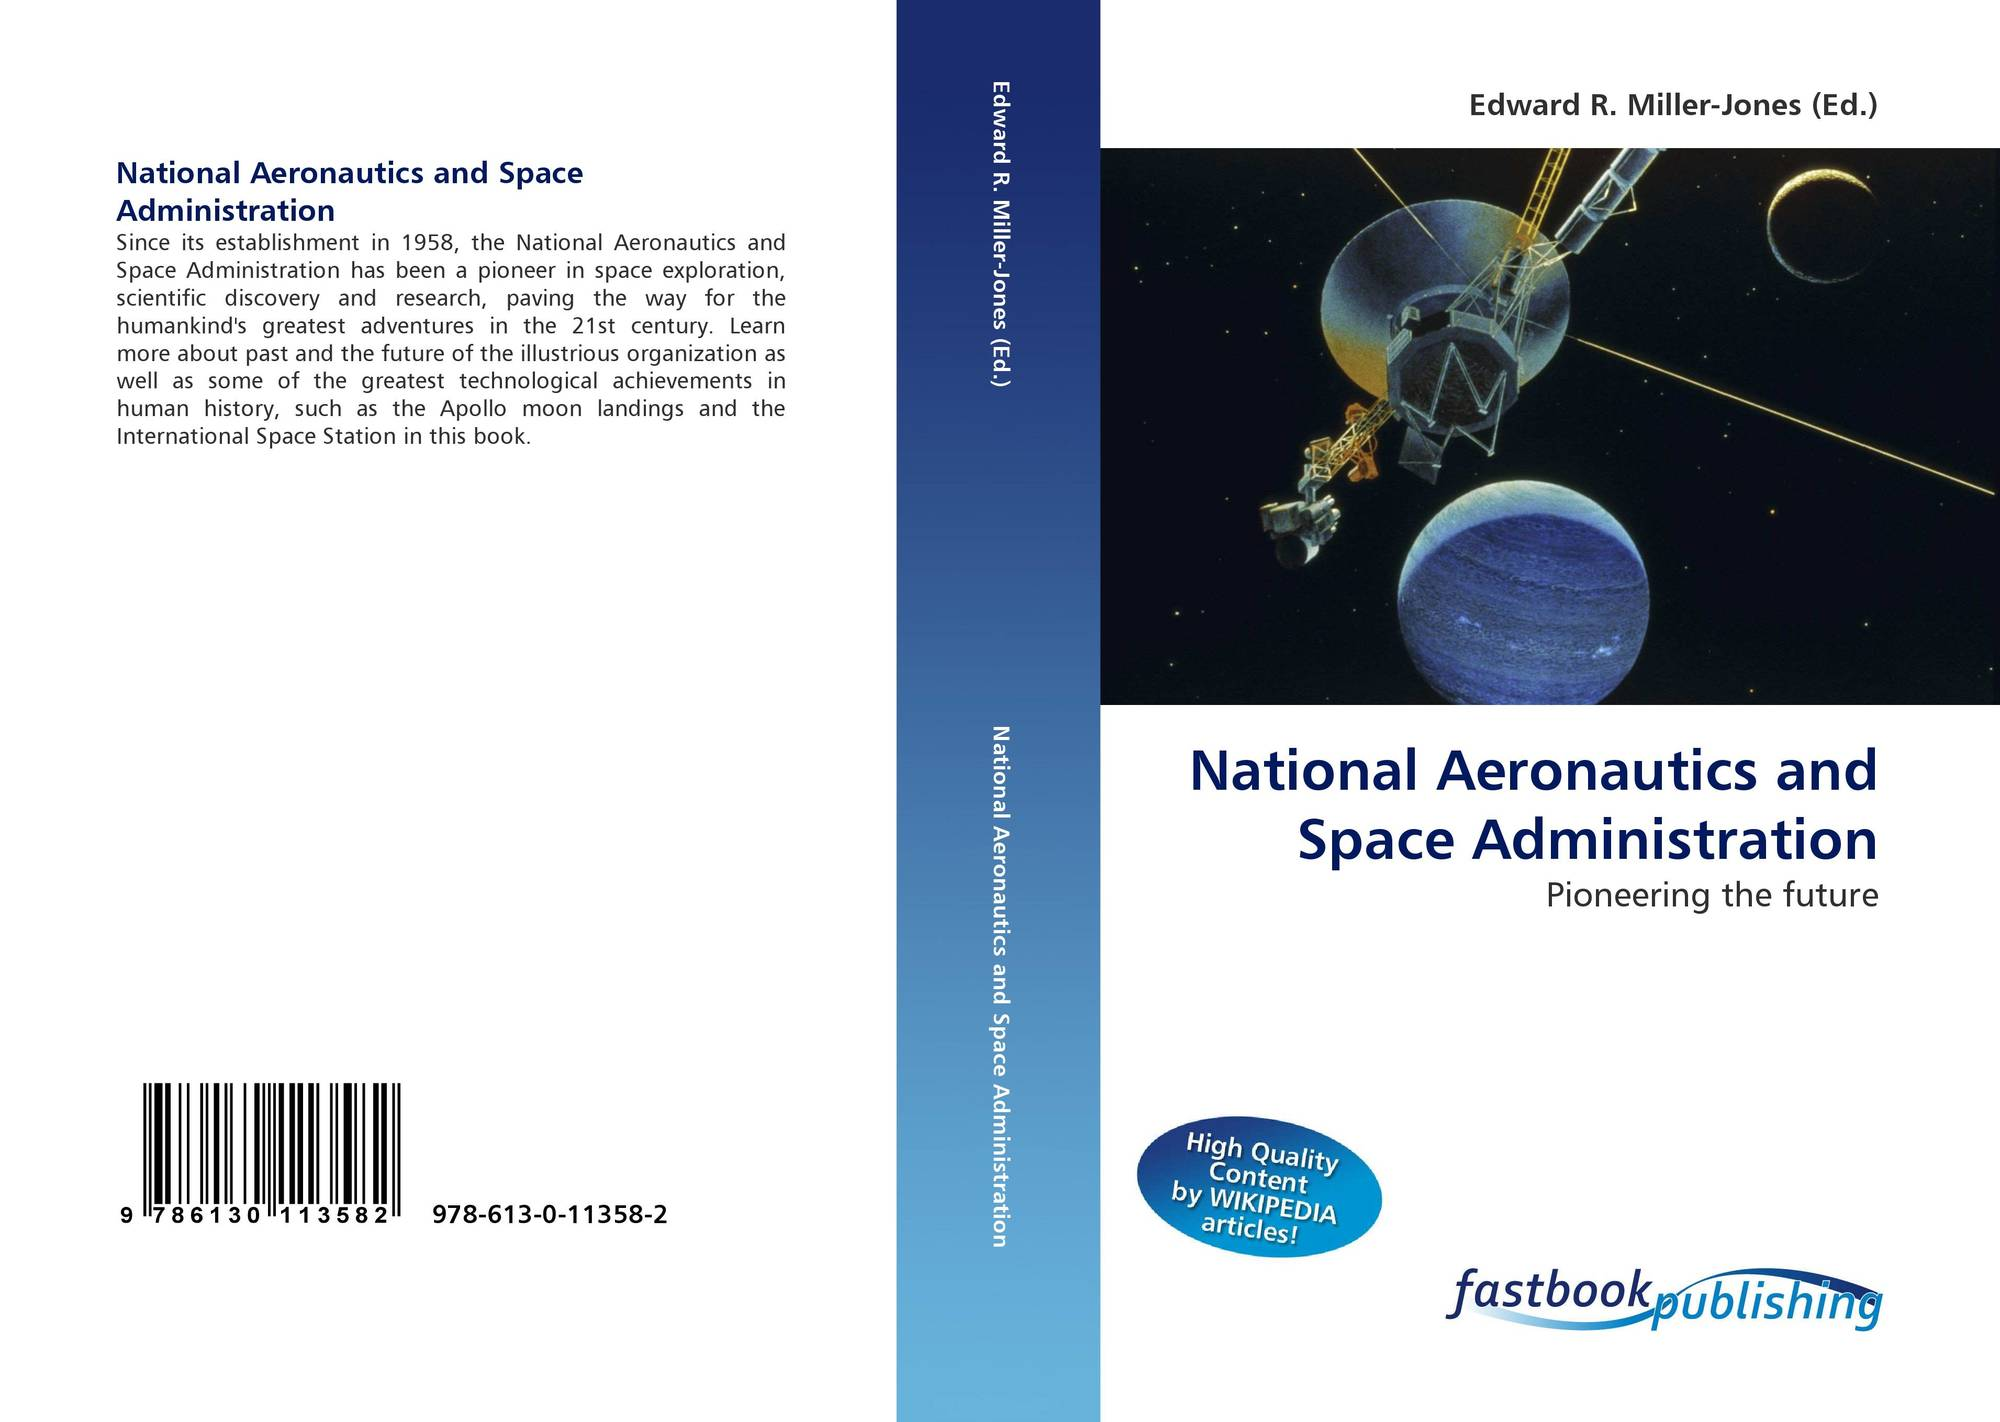 a review of the role of the national aeronautics and space administration nasa National aeronautics and space administration wwwnasagov nasa update pcos town hall, aas head meeting august 22, 2017  • nasa kdp-c (confirmation review) expected late 2017 13  - play a major role in the pre-launch science planning of xarm - advise the xarm project on issues related to mission science goals and performance.